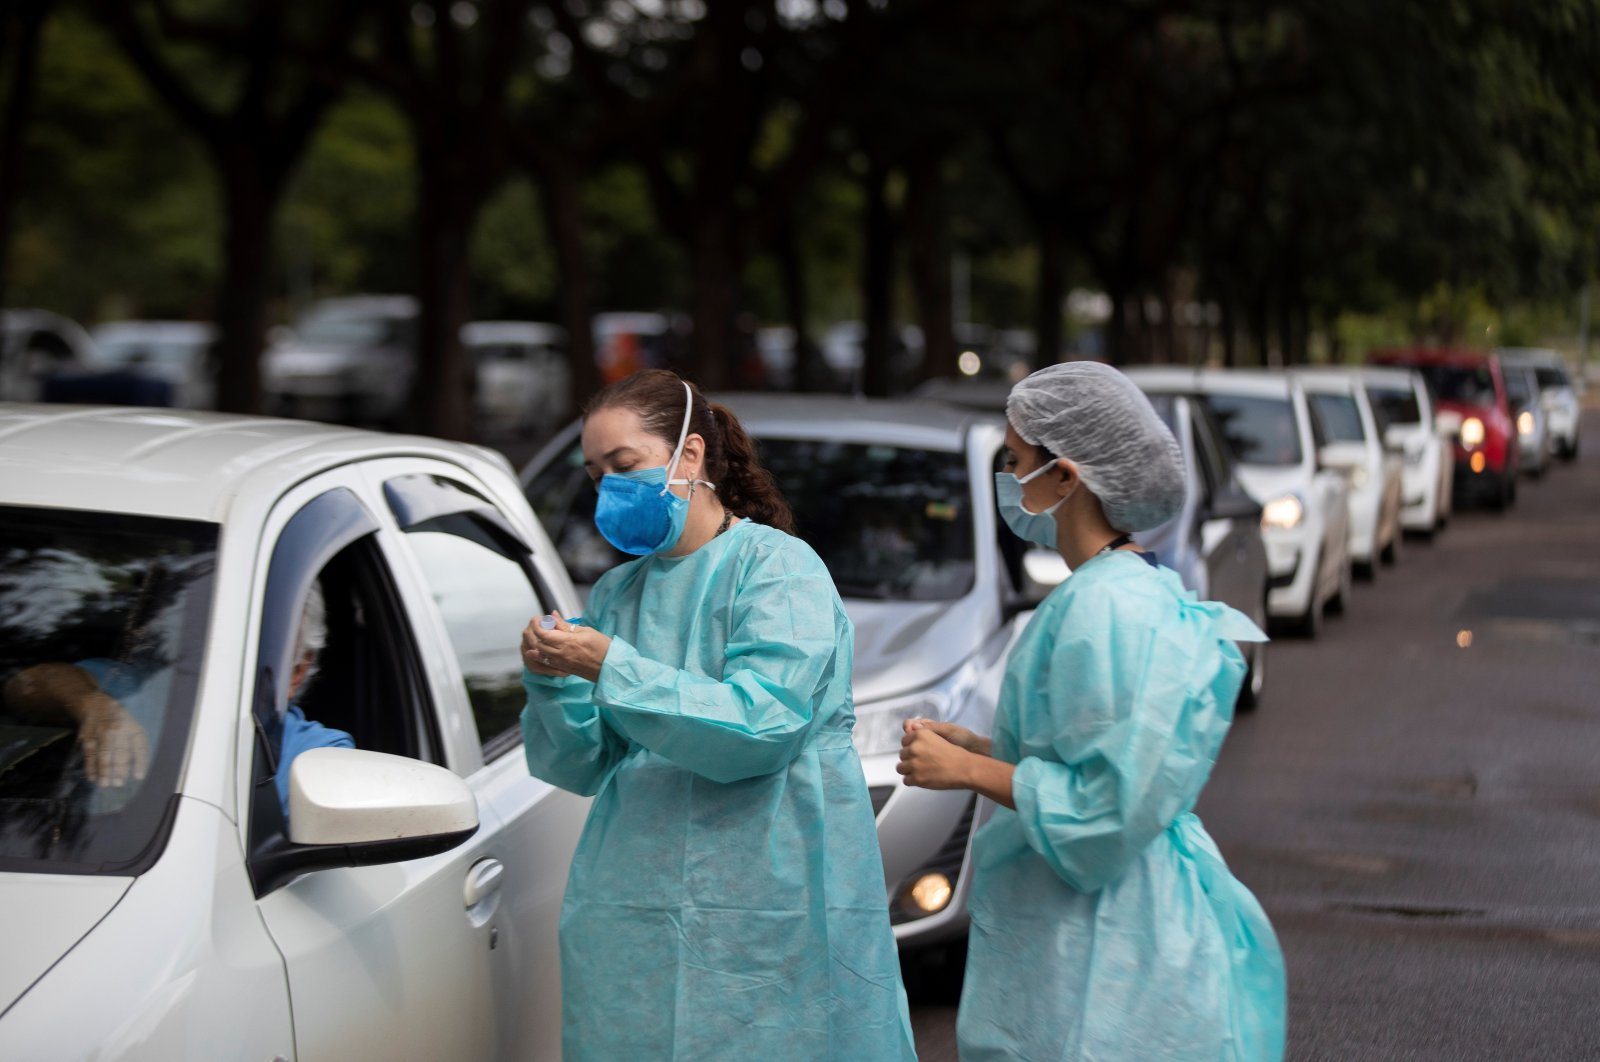 A health worker prepares a dose of the COVID-19 vaccine during a day of vaccination at a drive-in in Brasilia, Brazil, Feb. 26, 2021. (EPA-EFE Photo)